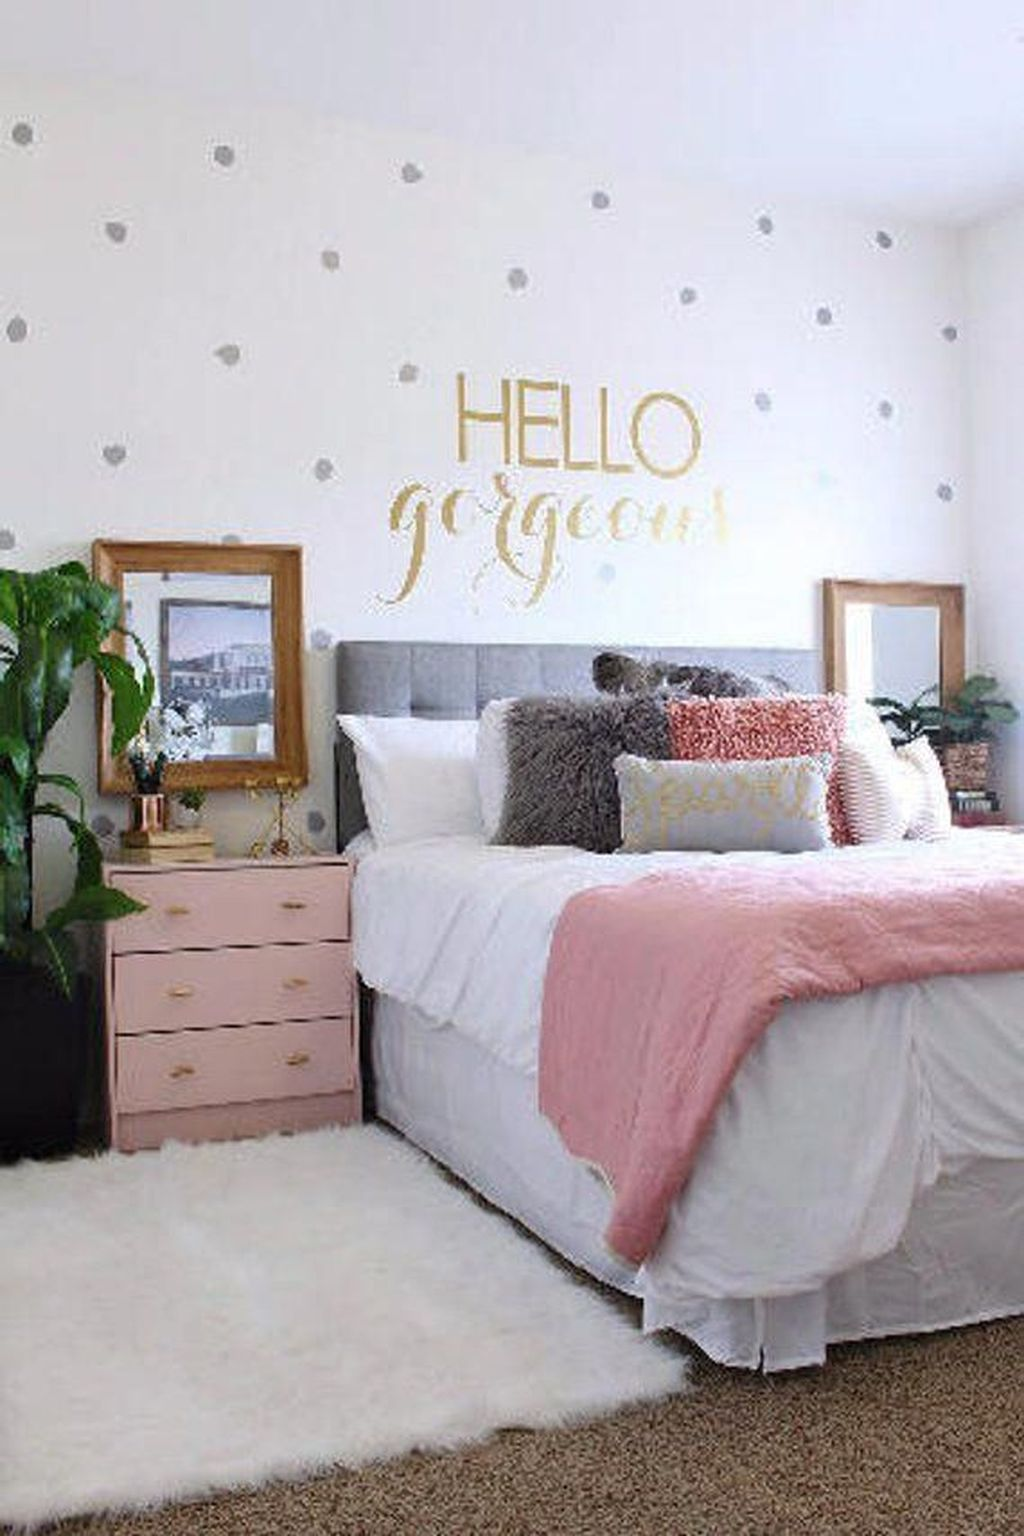 The Best DIY Bedroom Decor Ideas You Have To Try 04